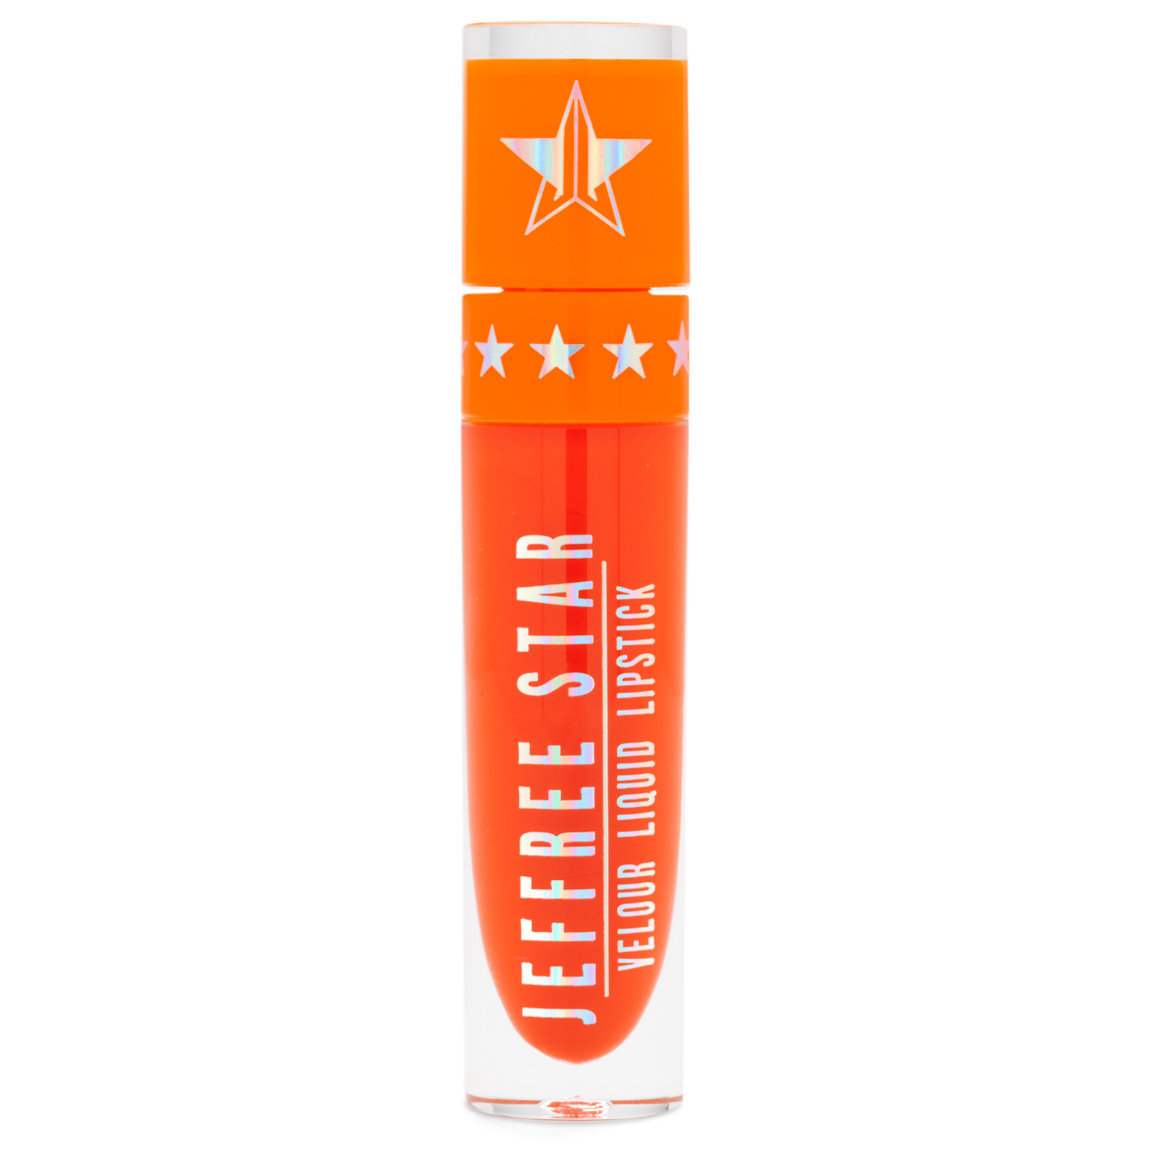 JEFFREE STAR - VELOUR LIQUID LIPSTICK - CORAL FIXATION